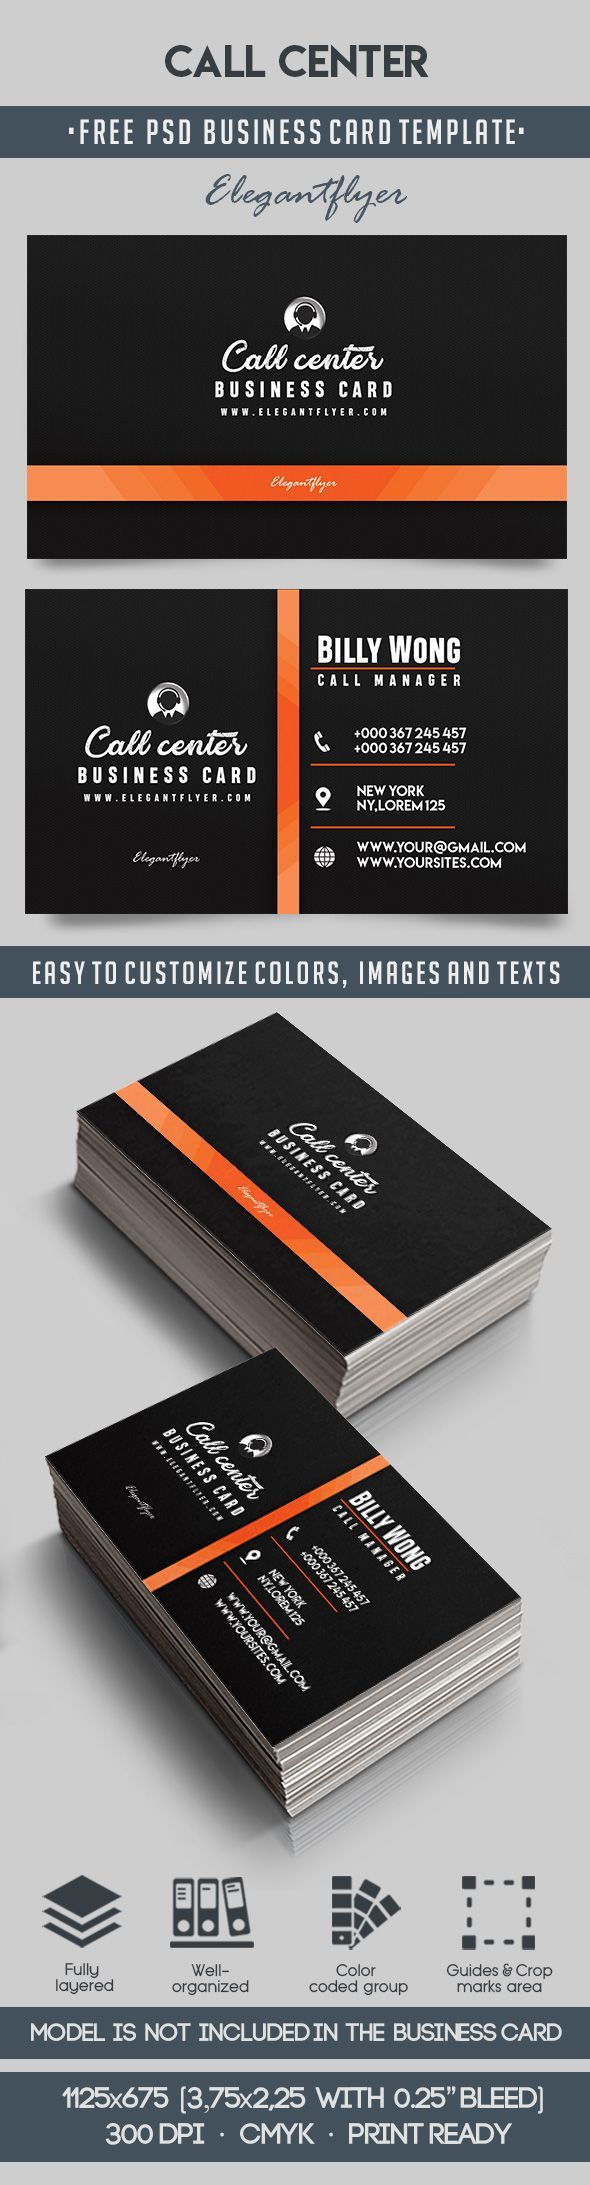 Best 25 free business cards ideas on pinterest free business httpselegantflyerfree business cards magicingreecefo Image collections